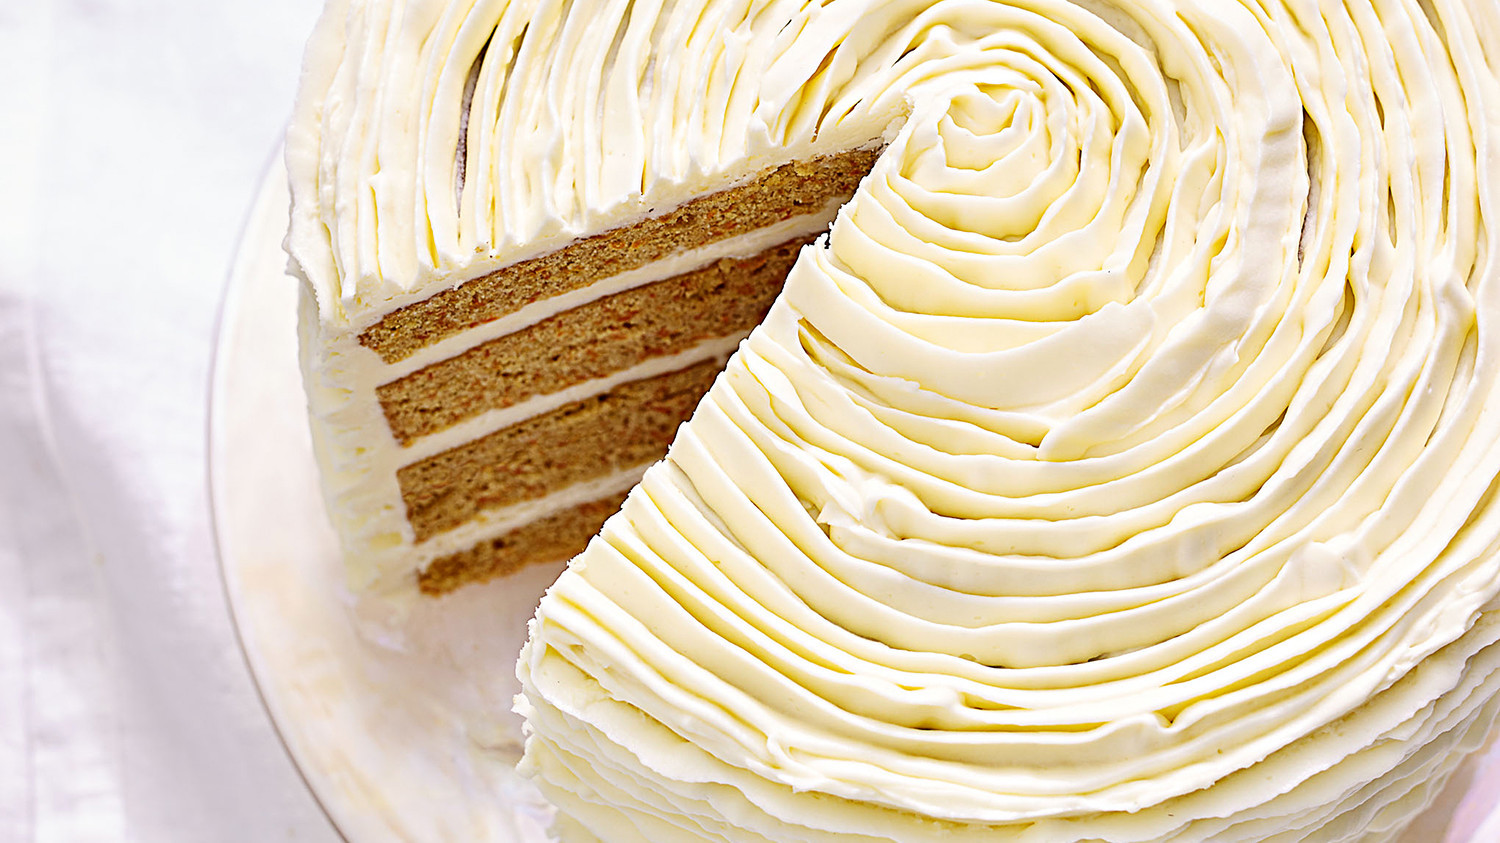 Carrot Cake With White Chocolate Frosting